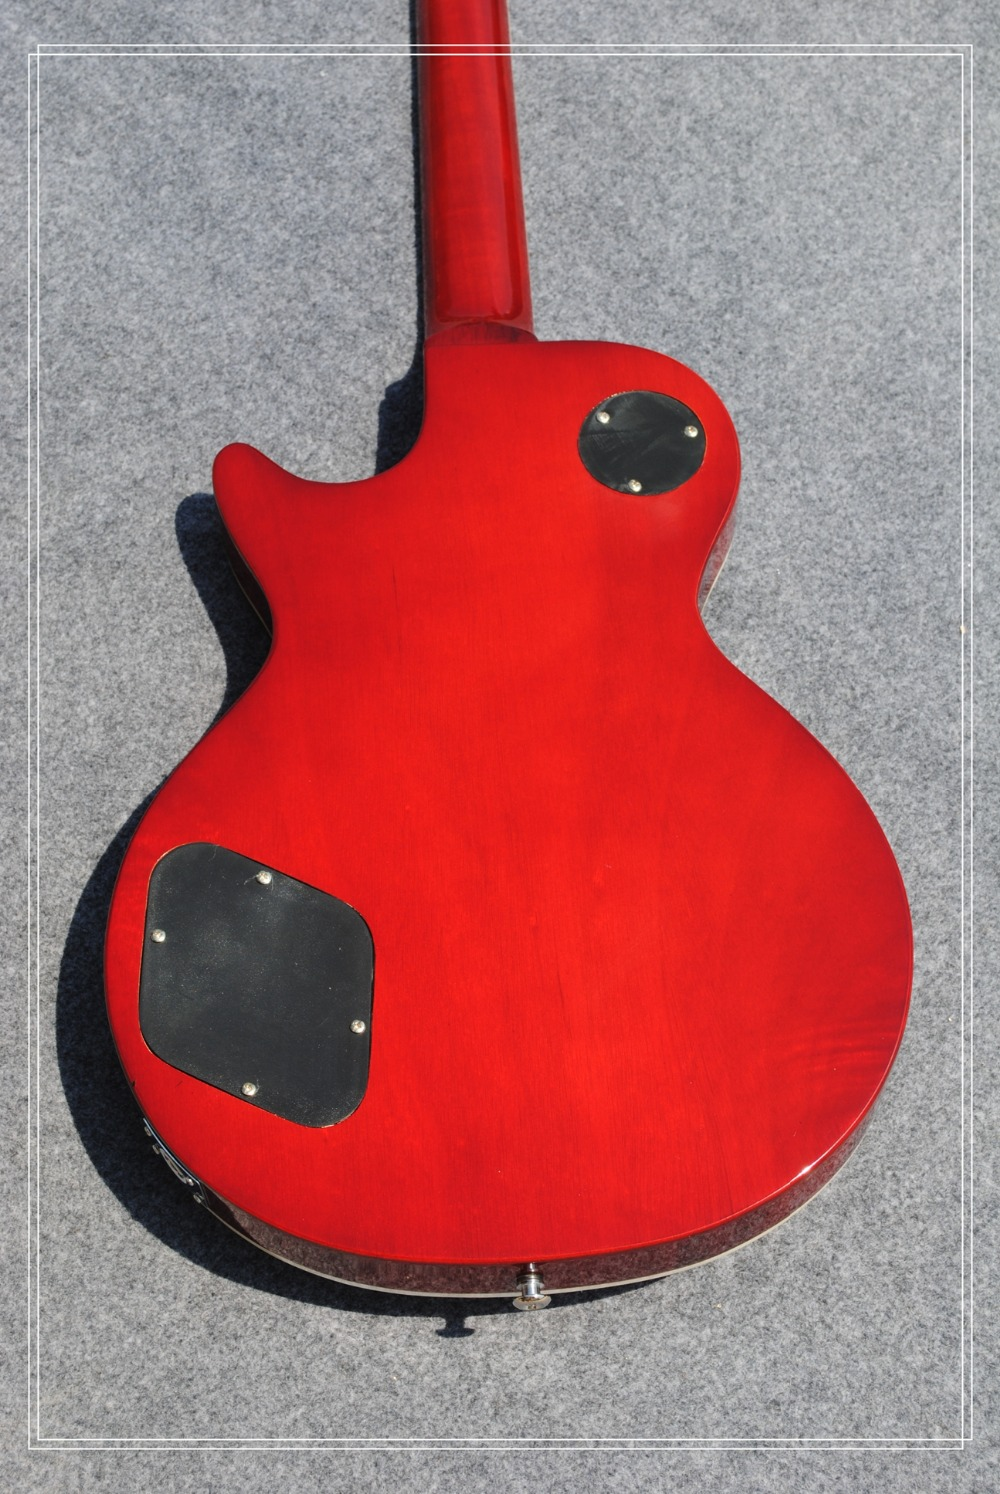 bad dog Hot Sale LP tiger guitar striped maple cover, Slash guitar signature on headstock high quality free shipping Custom